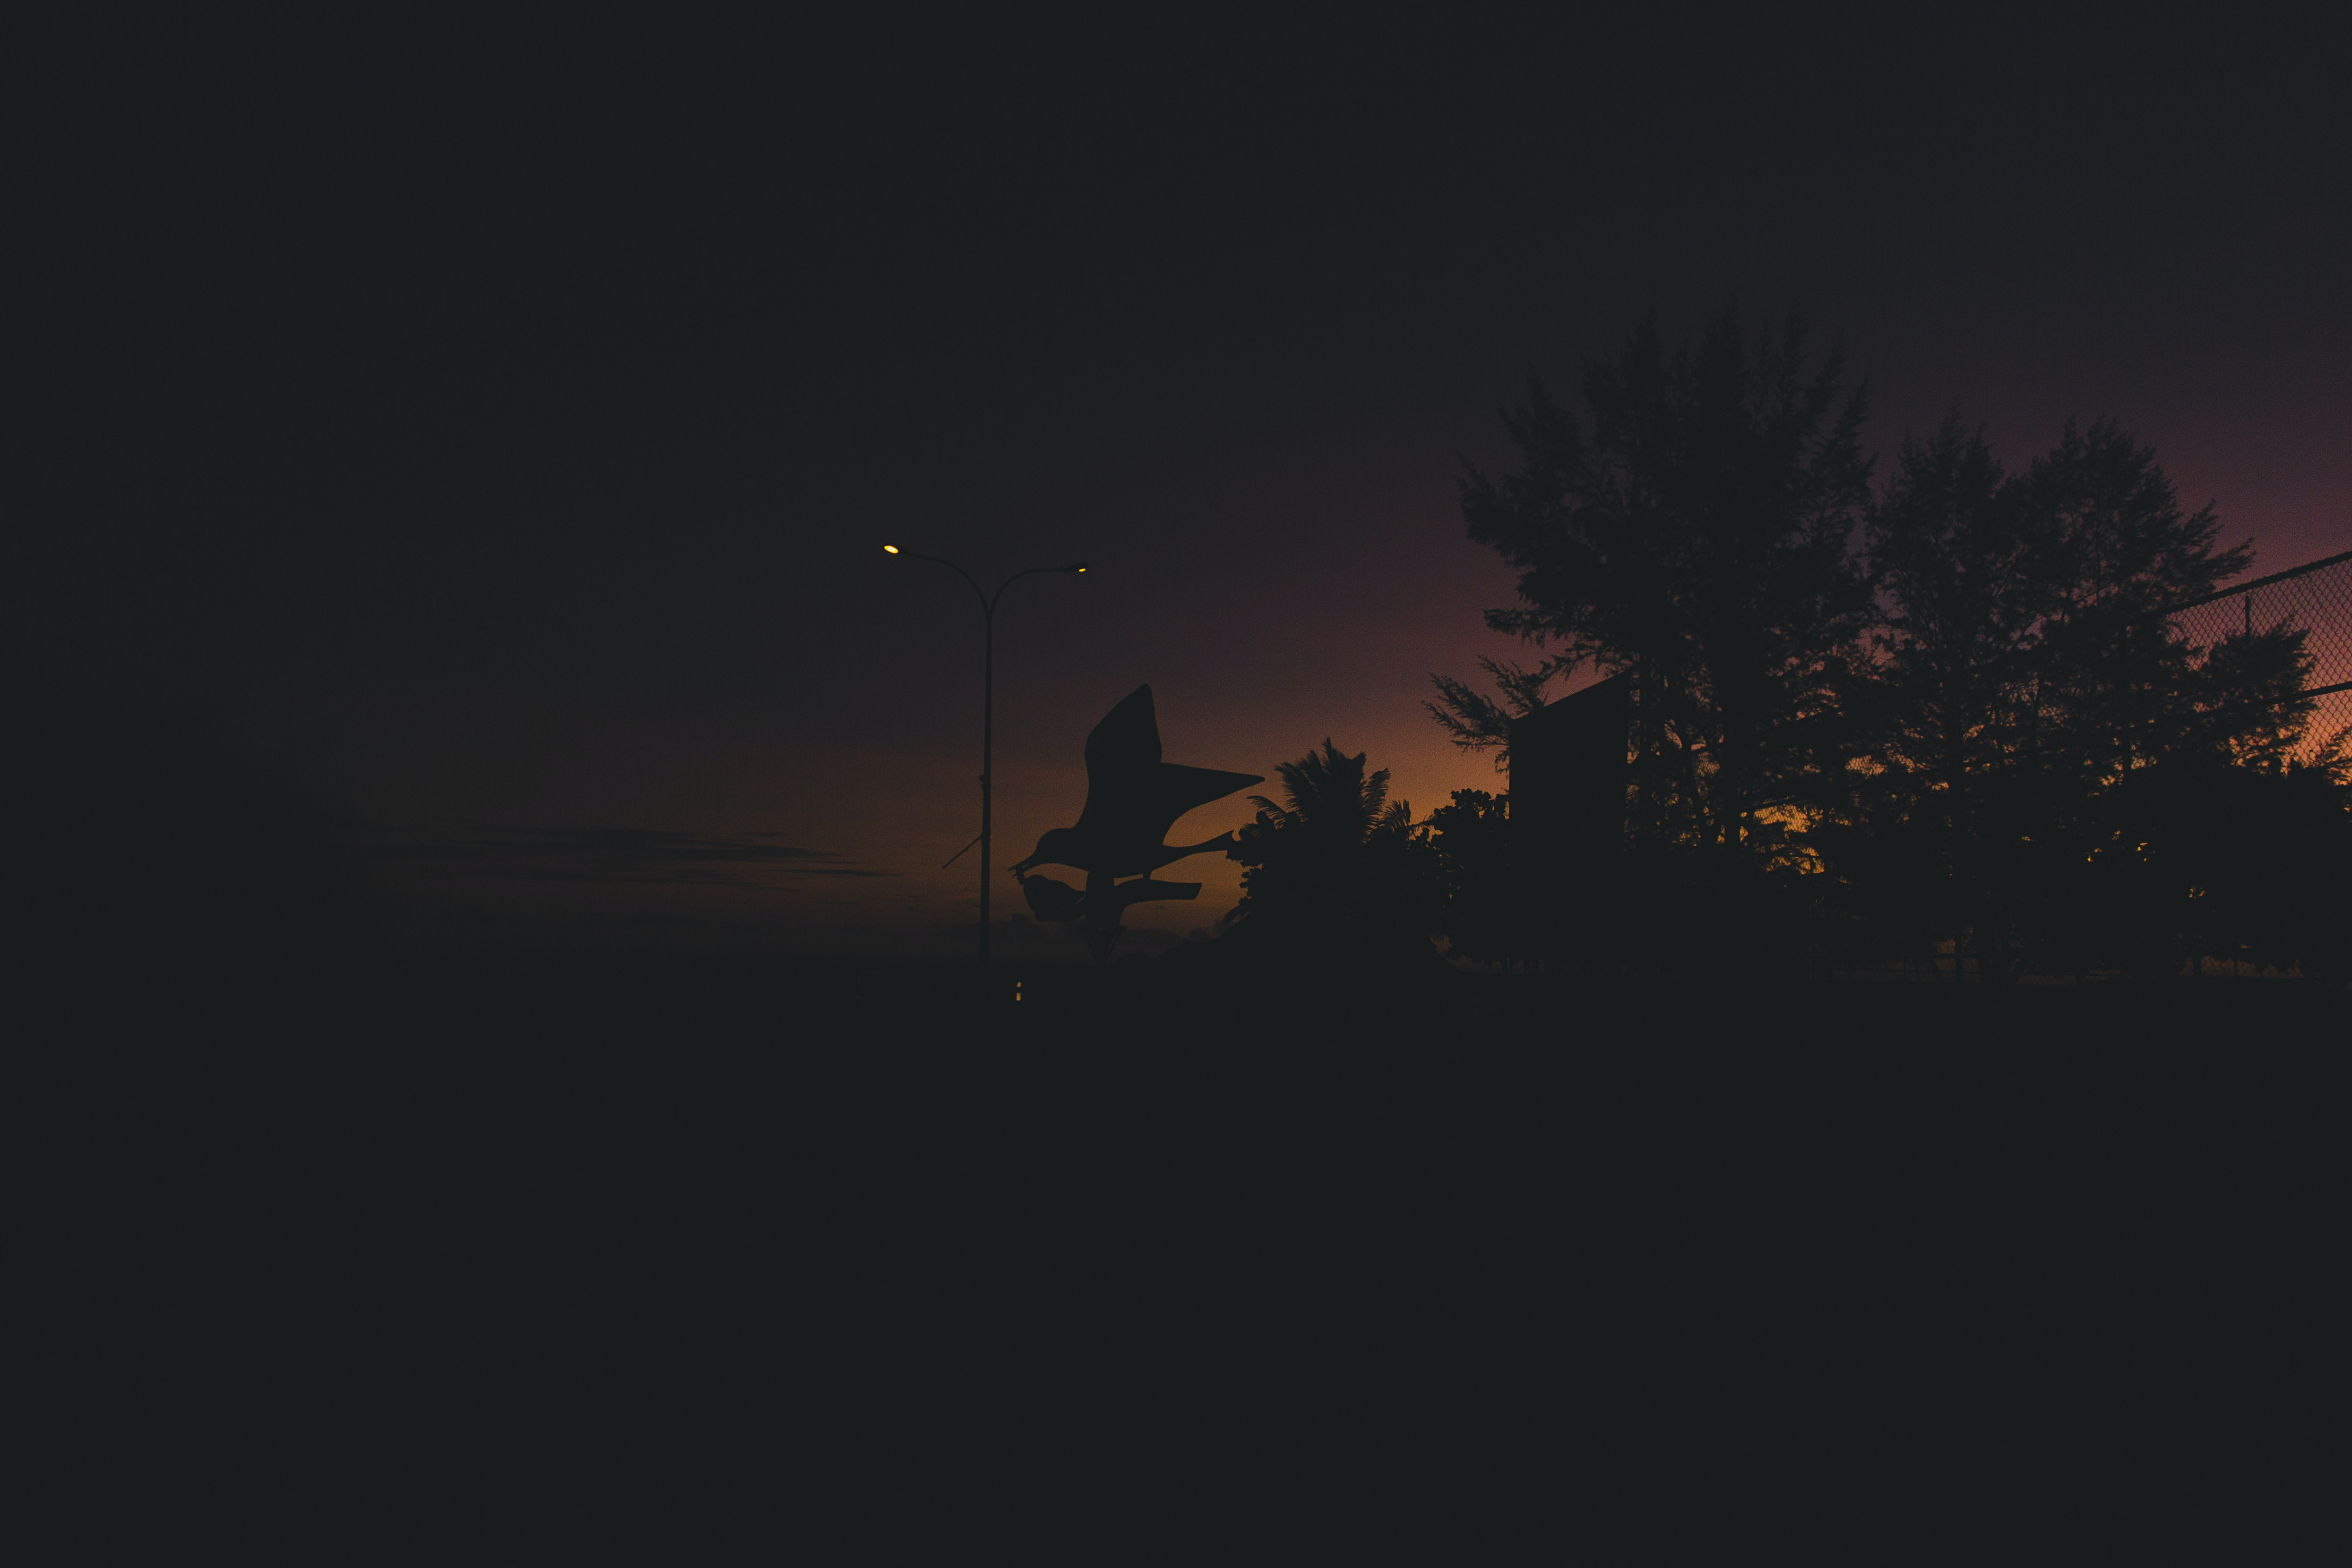 Darkness in a park outside.